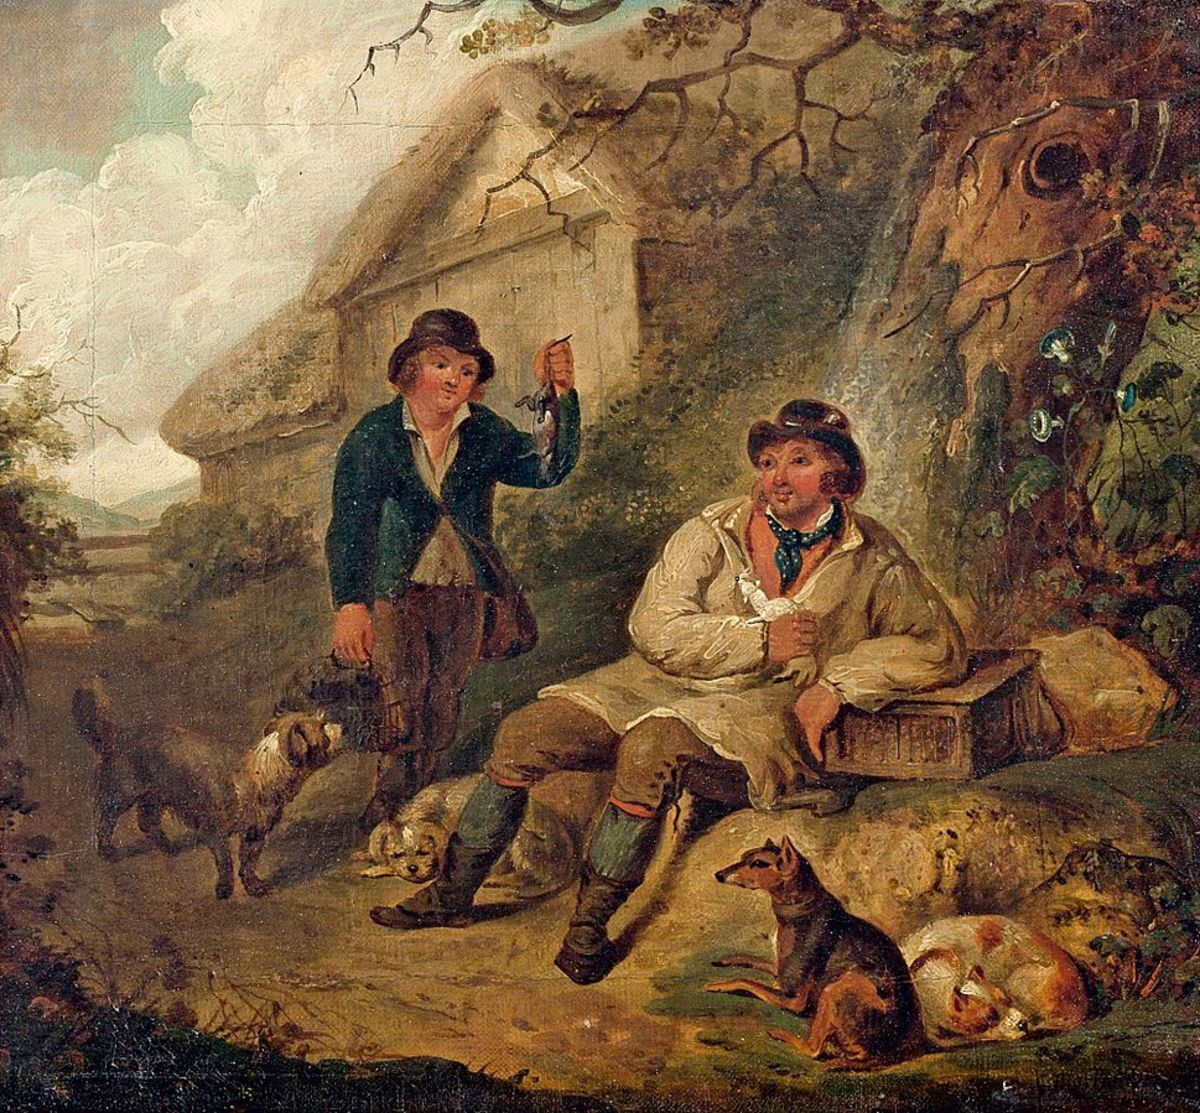 Rural life according to George Morland 1793.